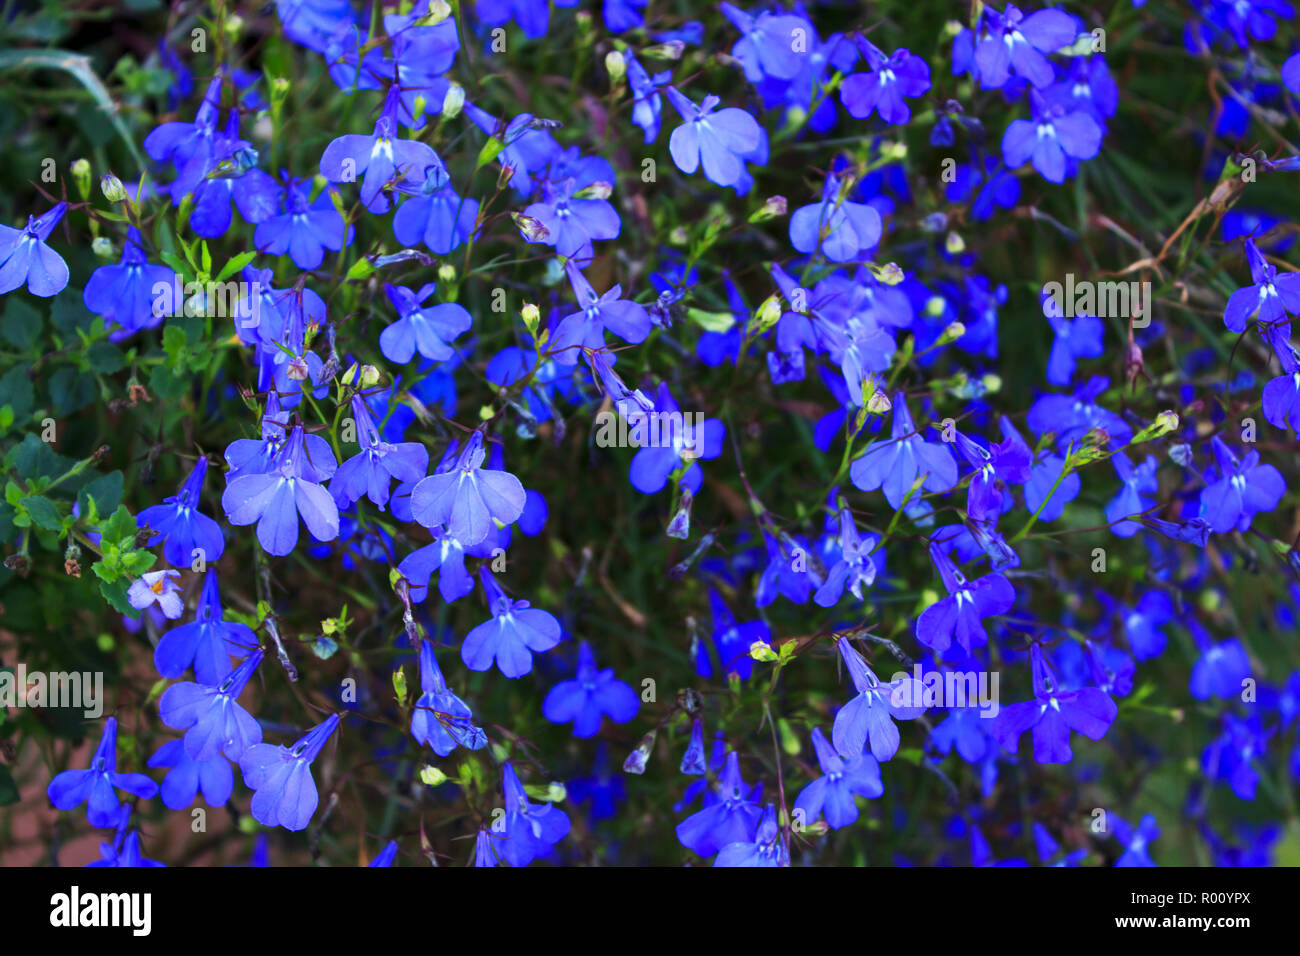 Lobelia Erinus Stock Photos Lobelia Erinus Stock Images Alamy